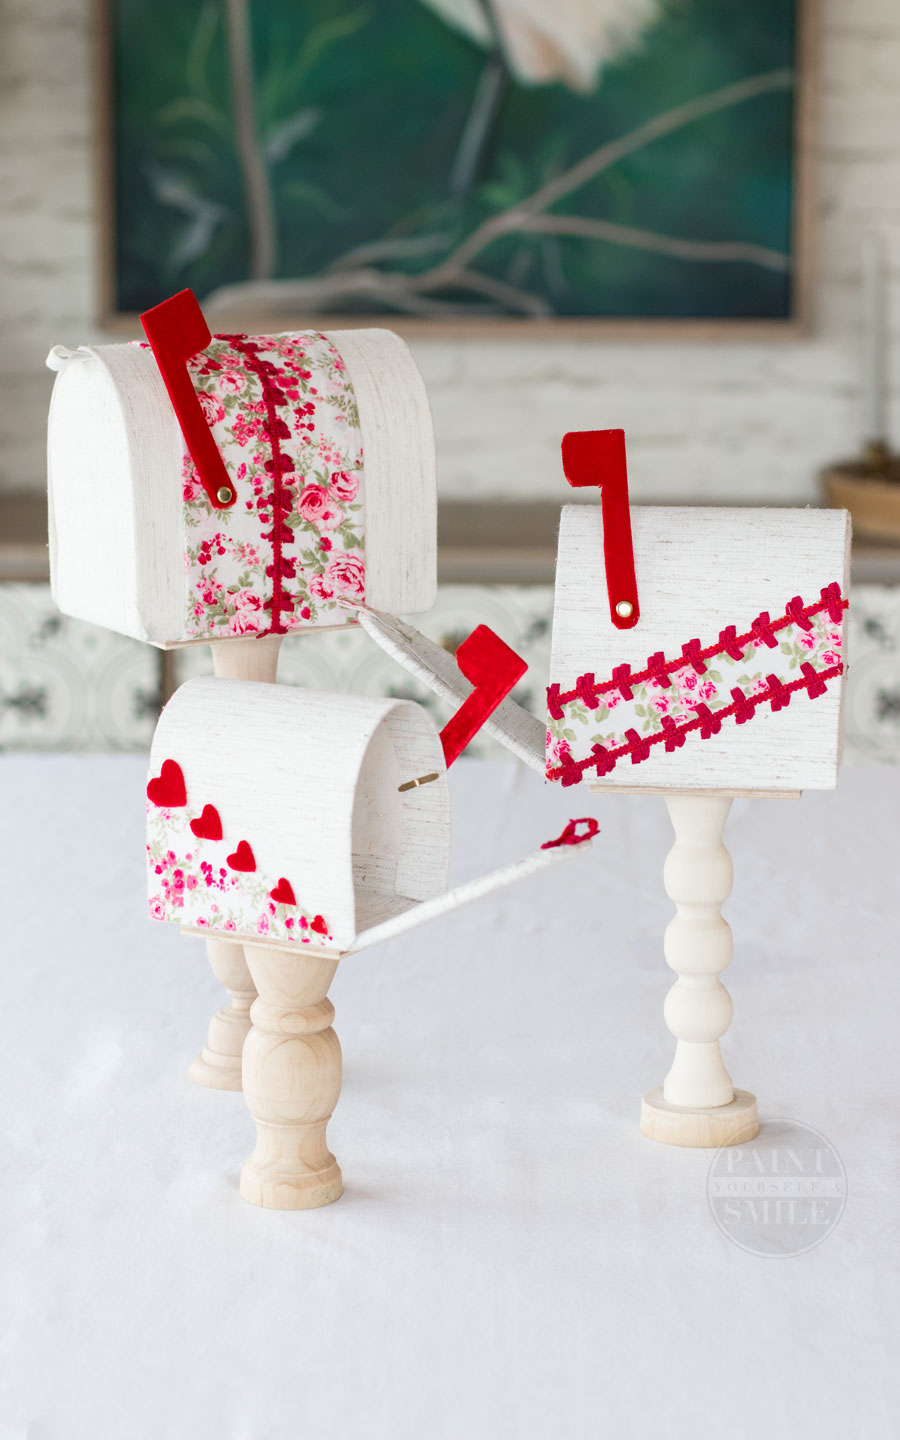 10 diy valentines day decor options - Valentines Day Decor